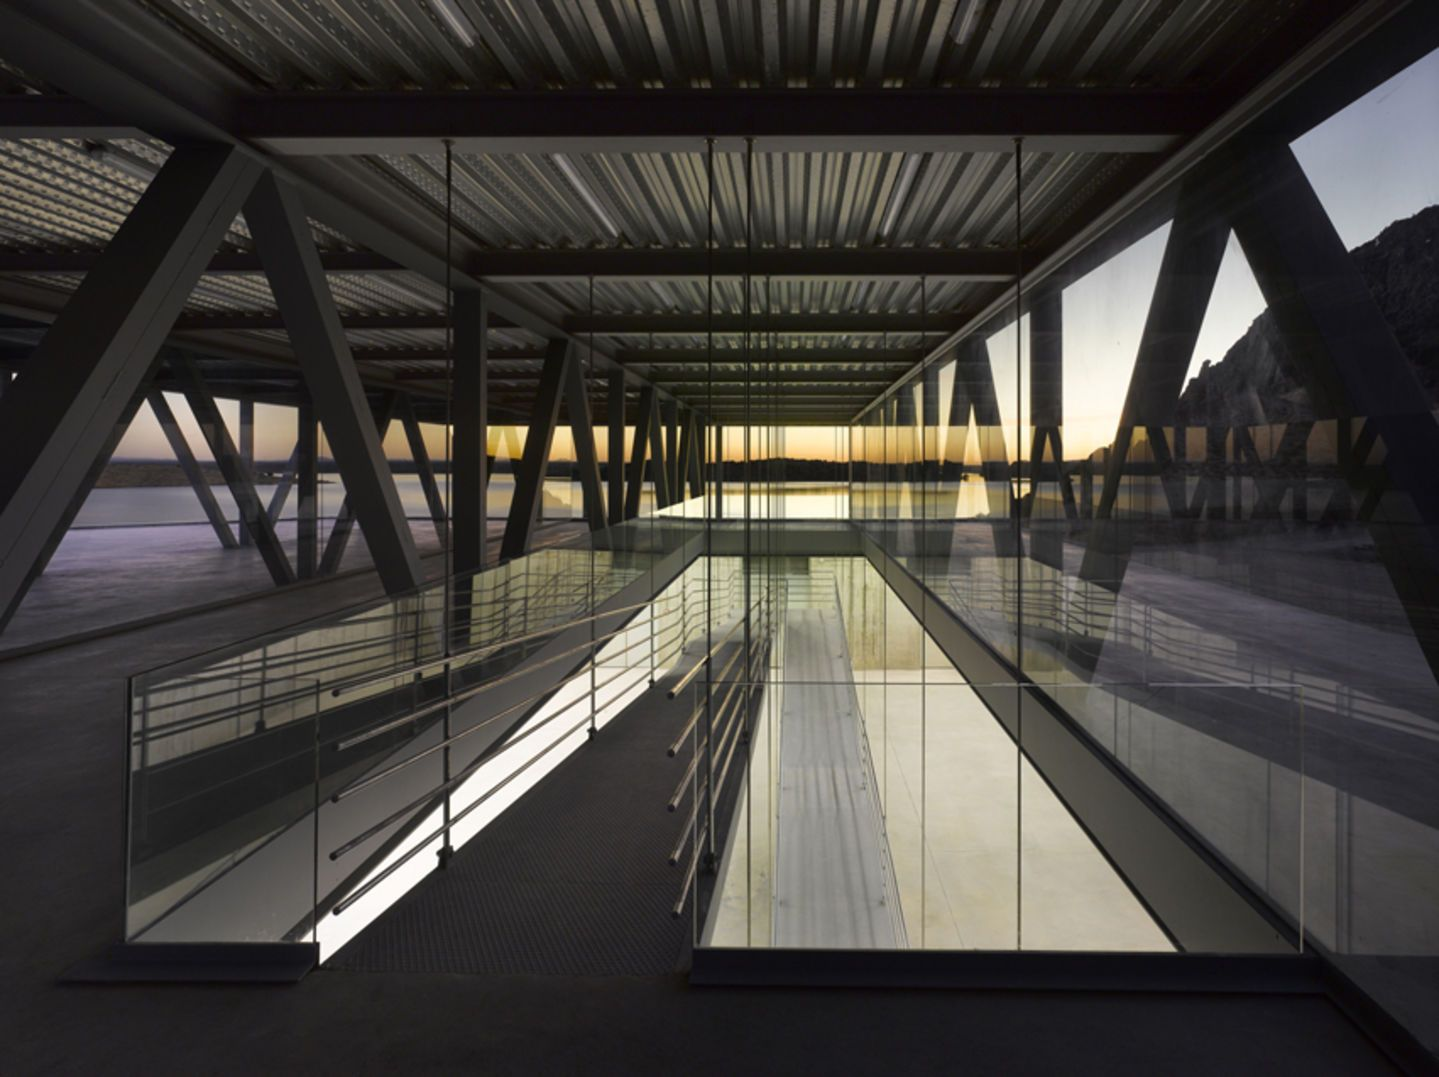 Runner-up Architecture Review Awards for emerging architecture 2011